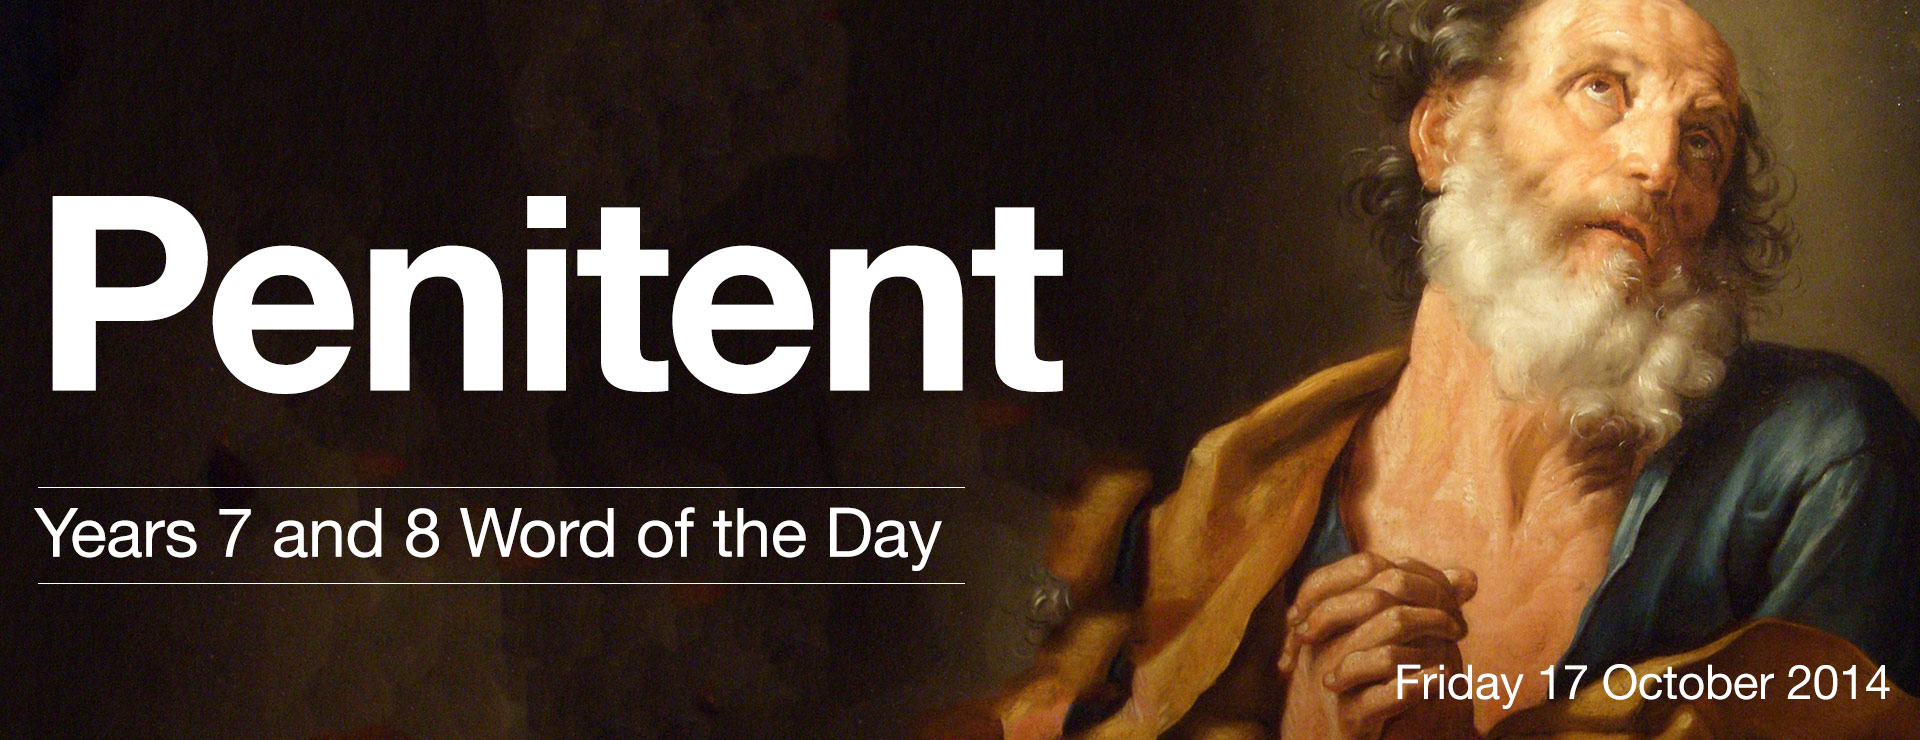 Word-of-the-Day-71.jpg